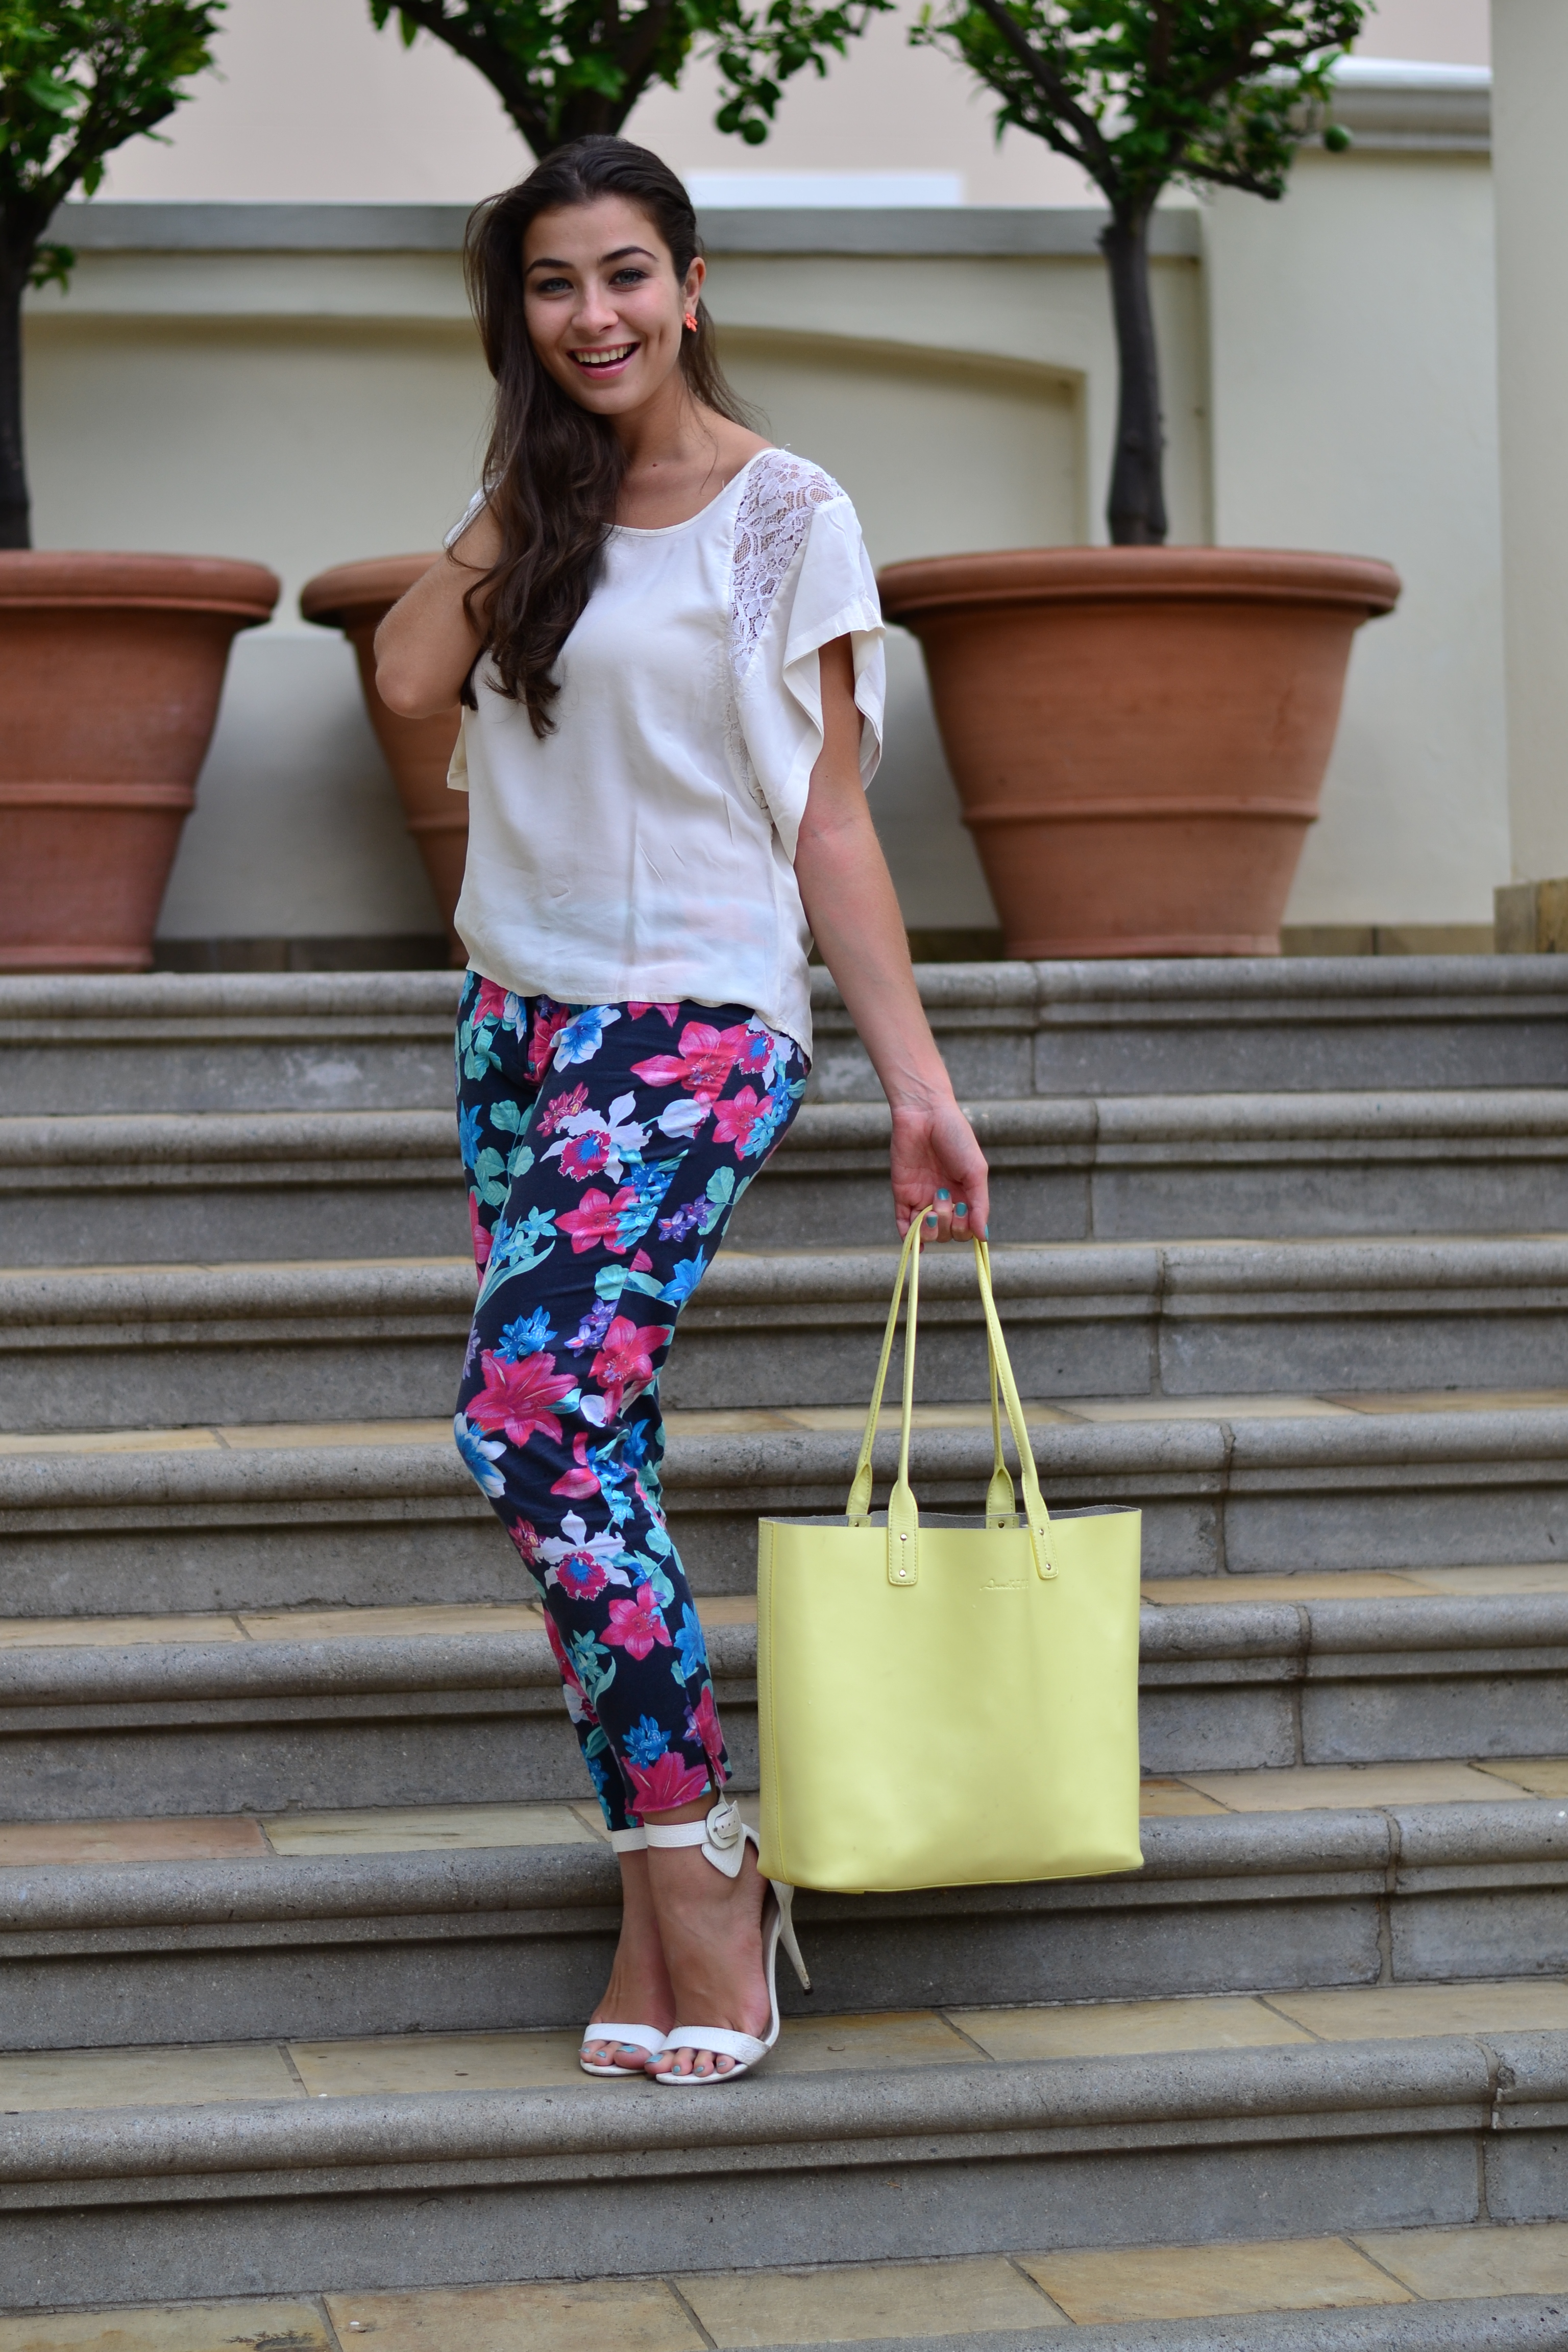 9972ef20e36 How to Wear a Blouse Stylishly - Top 18 Outfit Ideas to Wear .